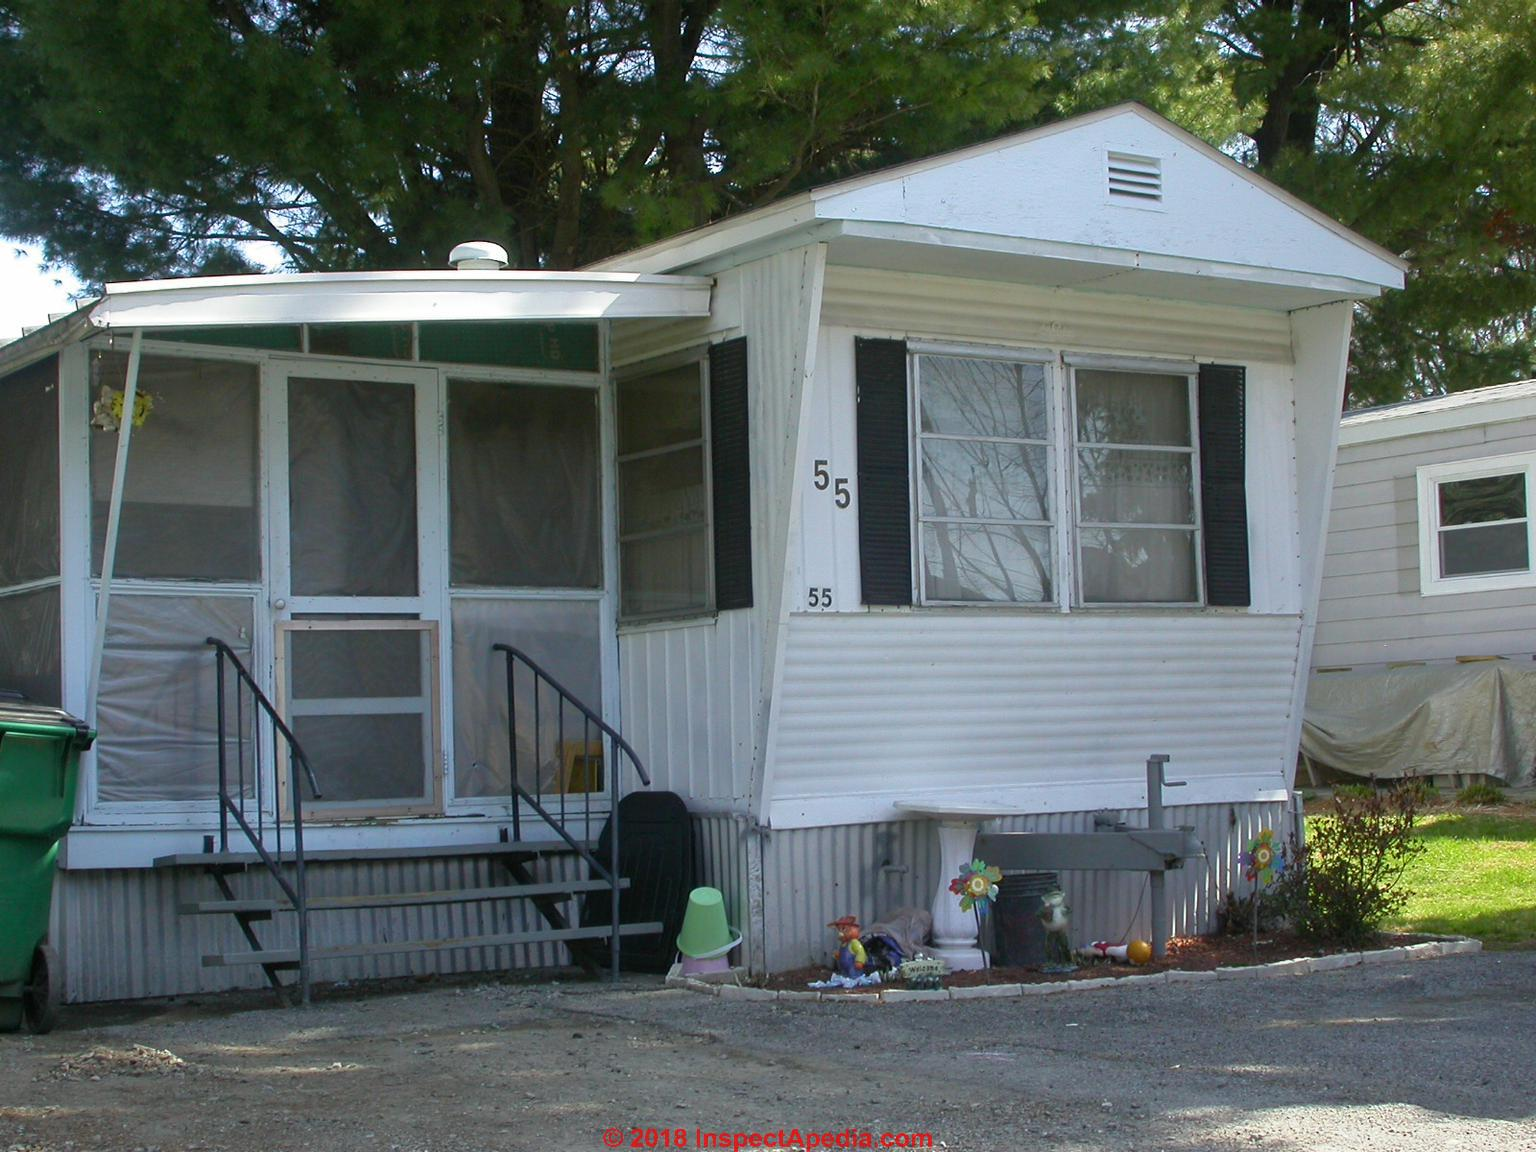 hight resolution of attached porch on a mobile home c inspectapedia com daniel friedman at inspectapedia